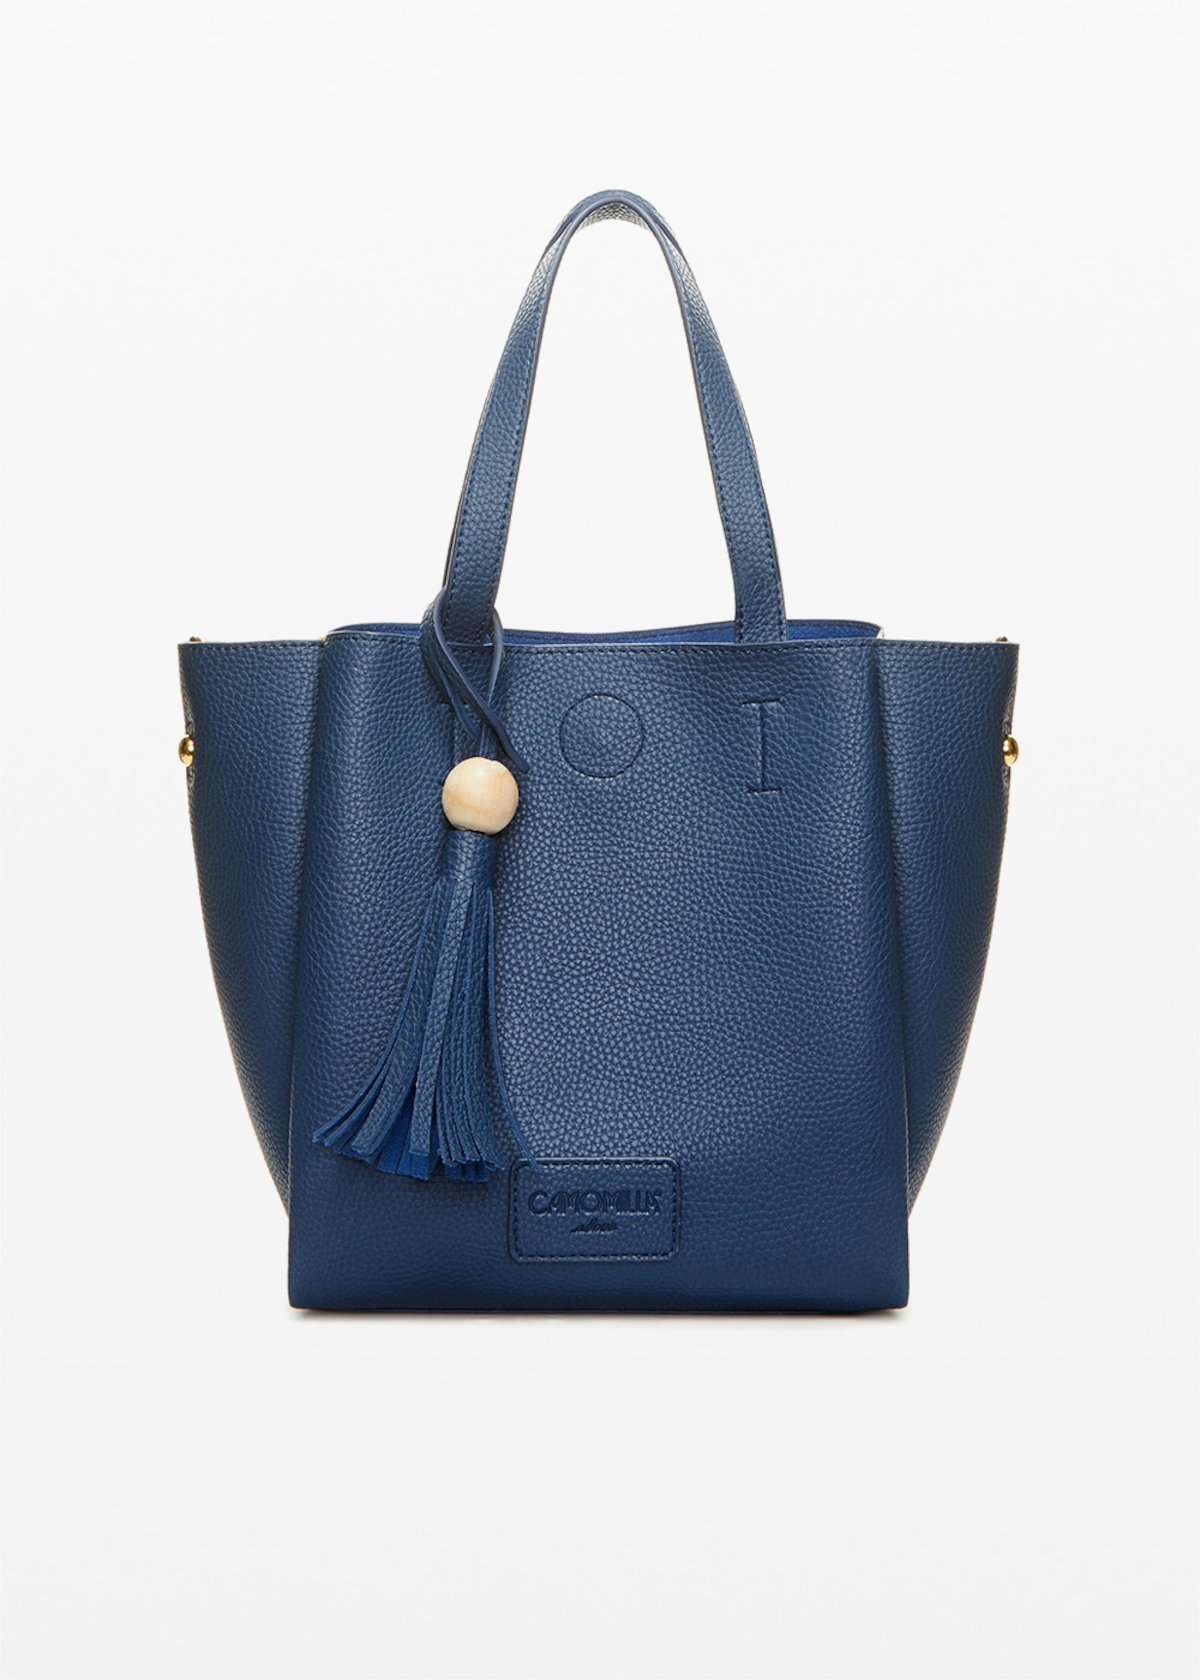 Borsa Bryan in ecopelle stampa cervo double color - Medium Blue - Donna